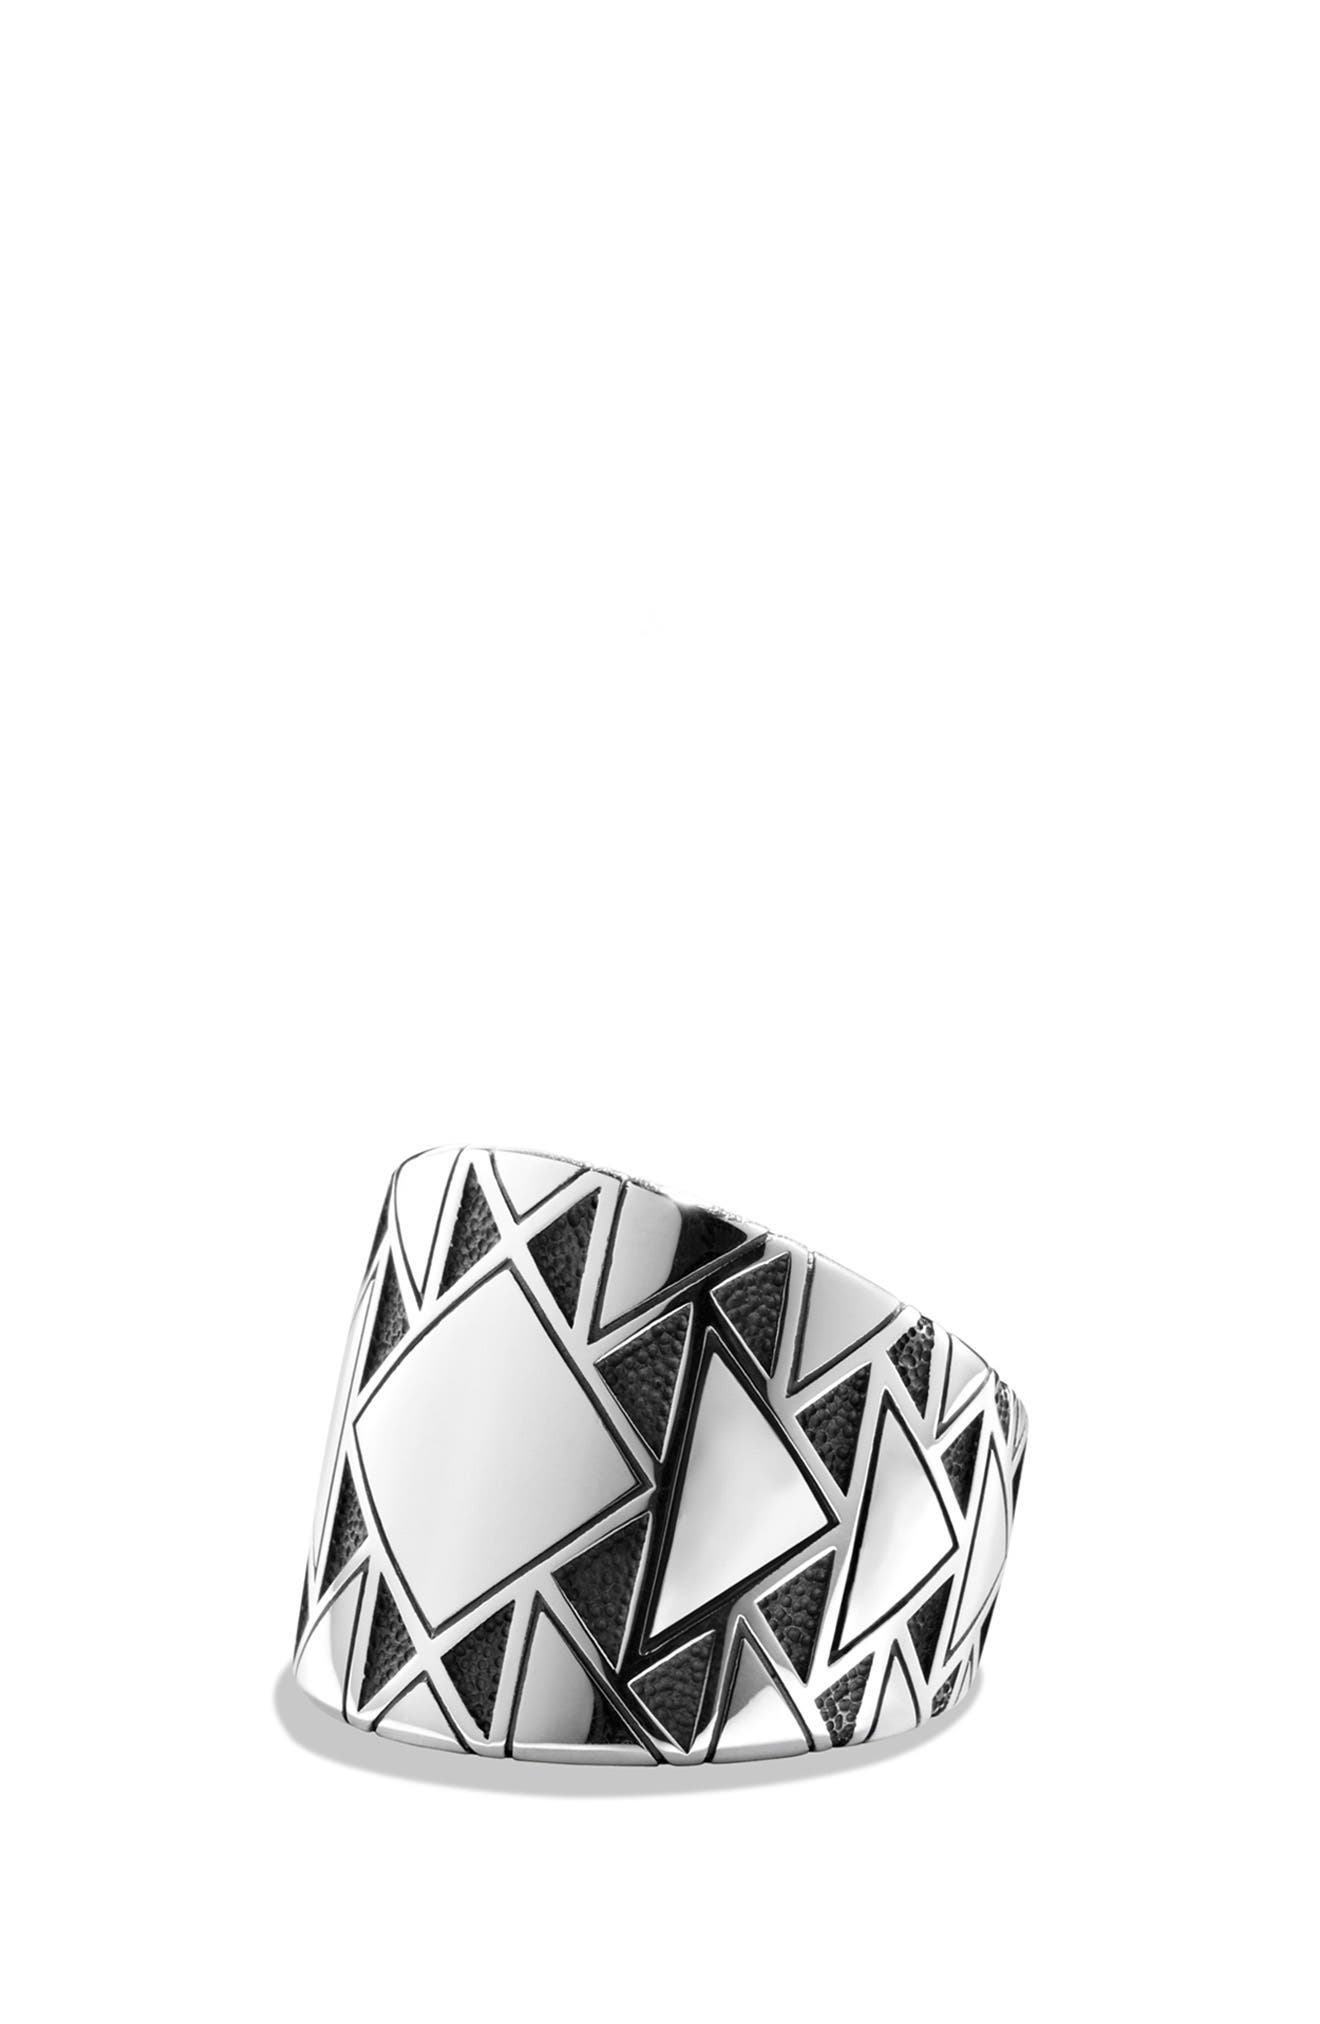 Southwest Signet Ring with Black Diamonds,                             Alternate thumbnail 3, color,                             040